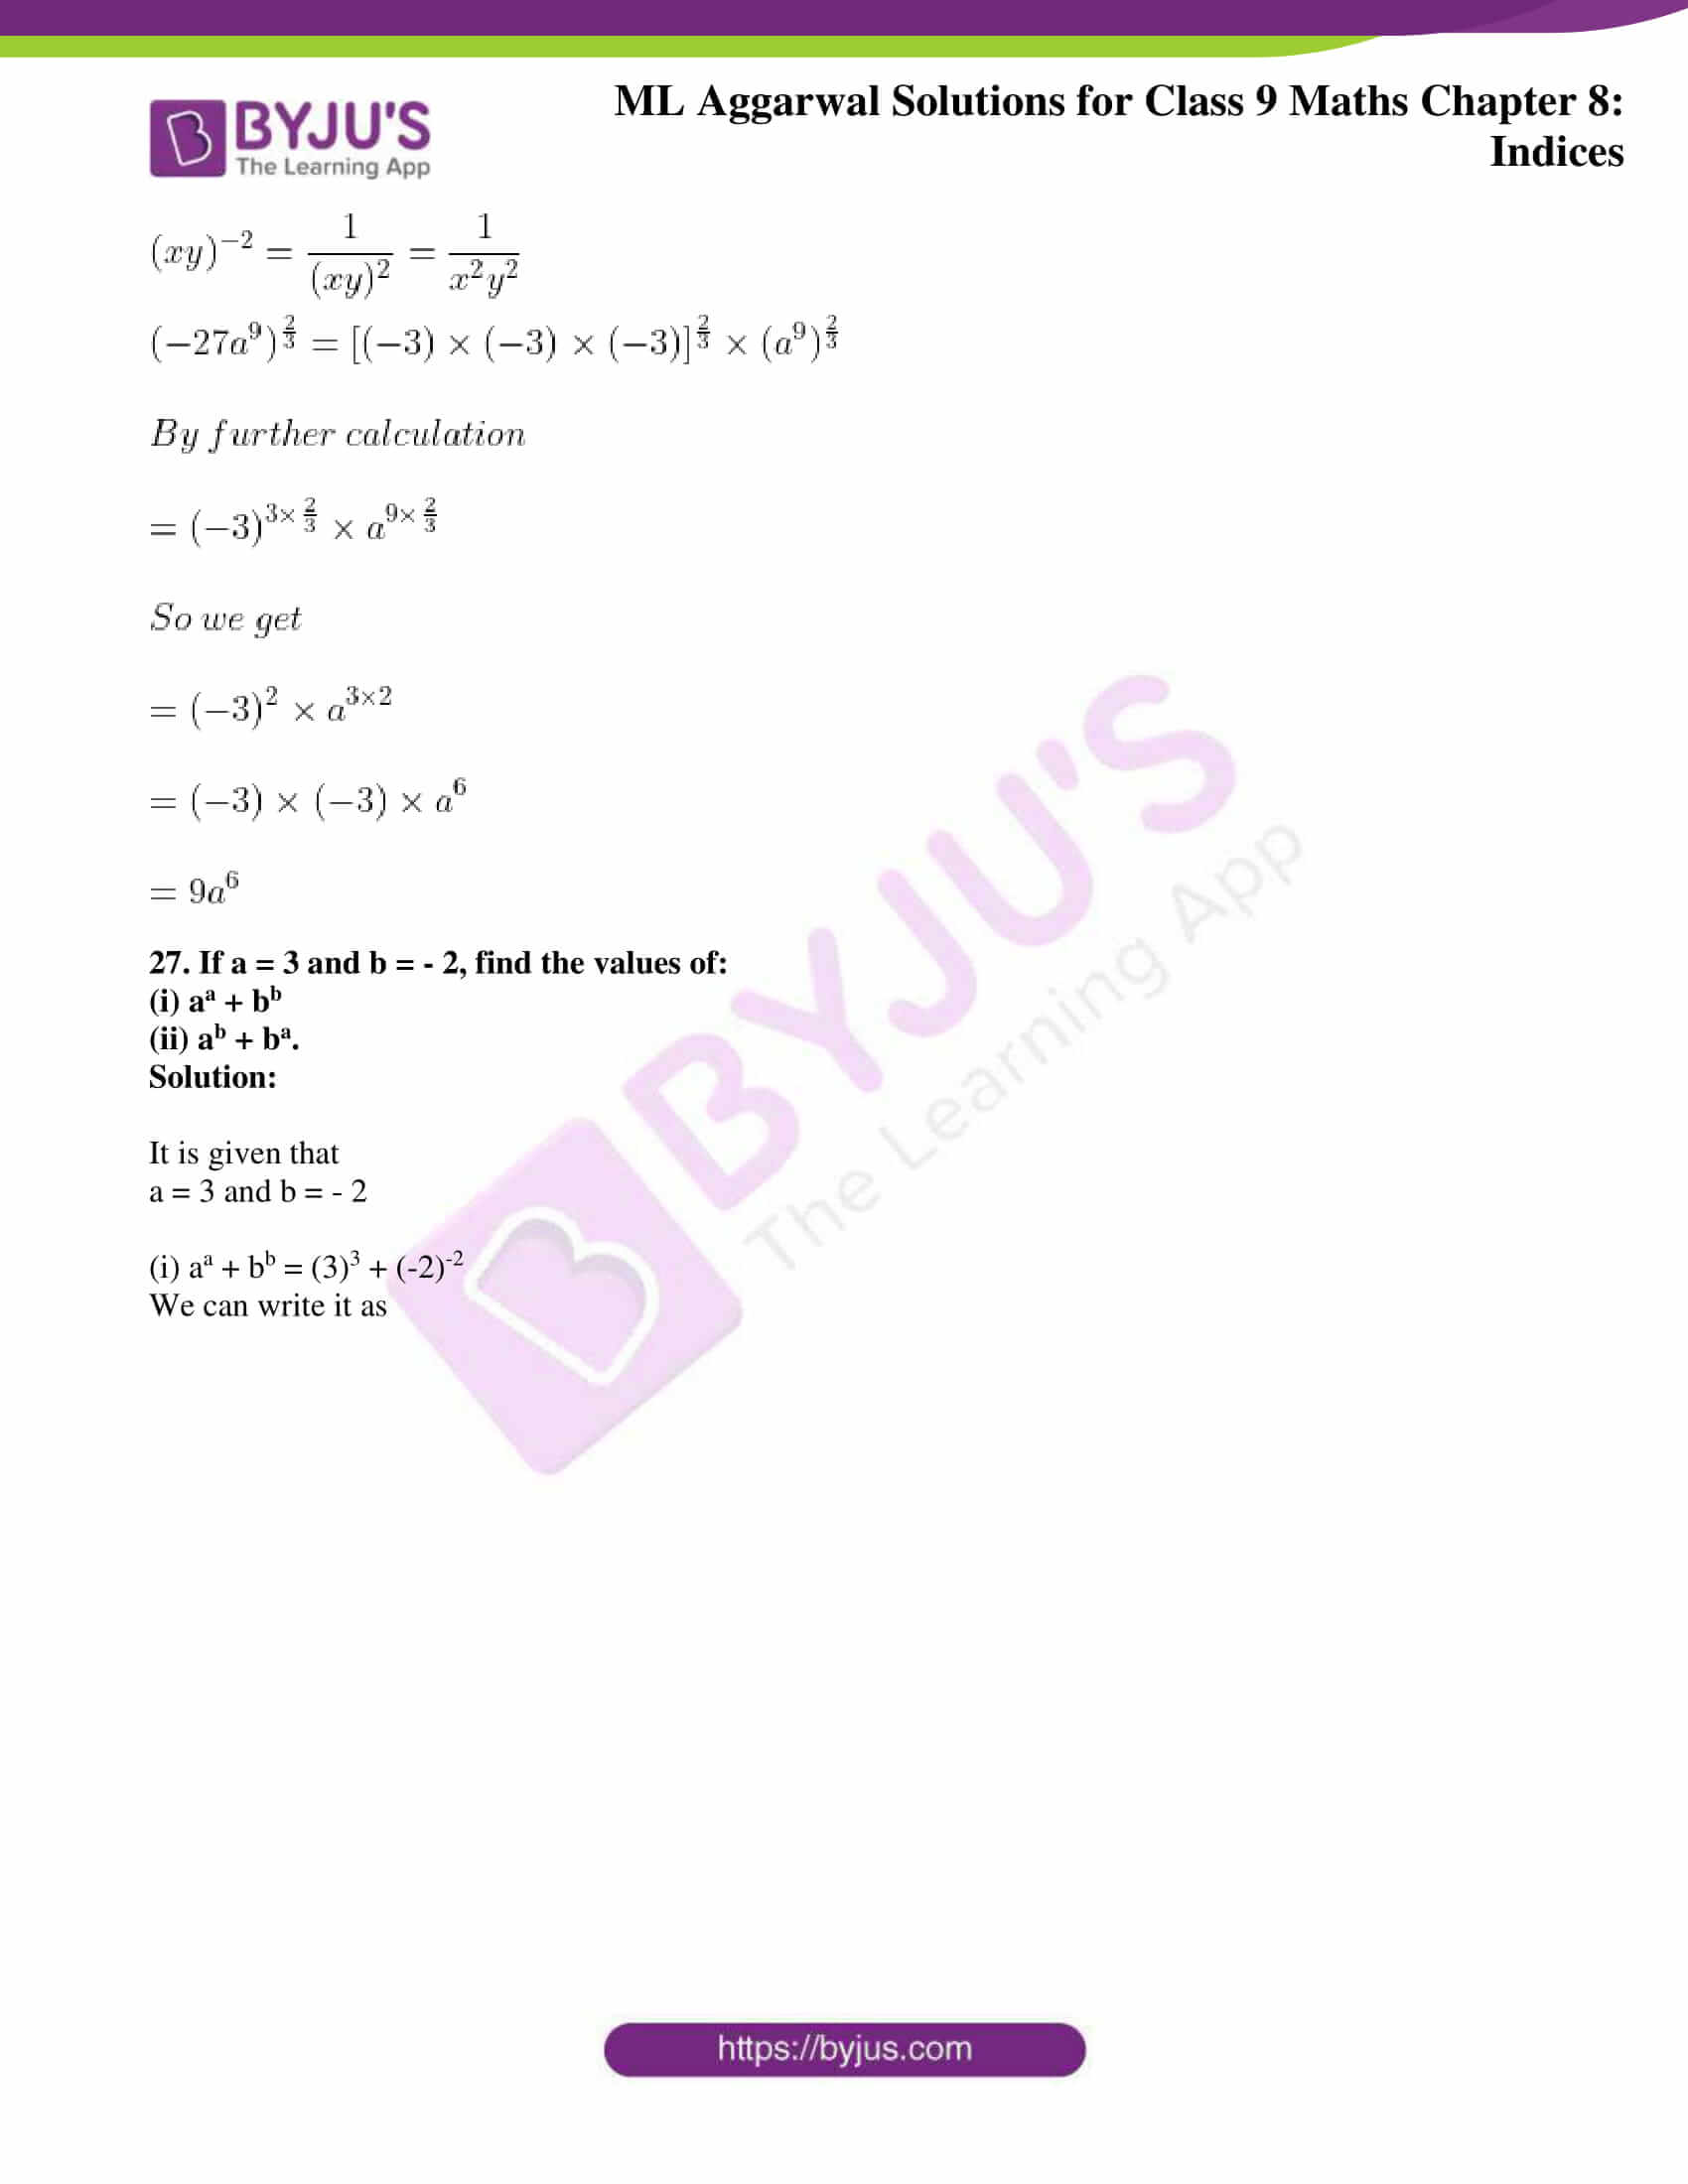 ml aggarwal solutions for class 9 maths chapter 8 29